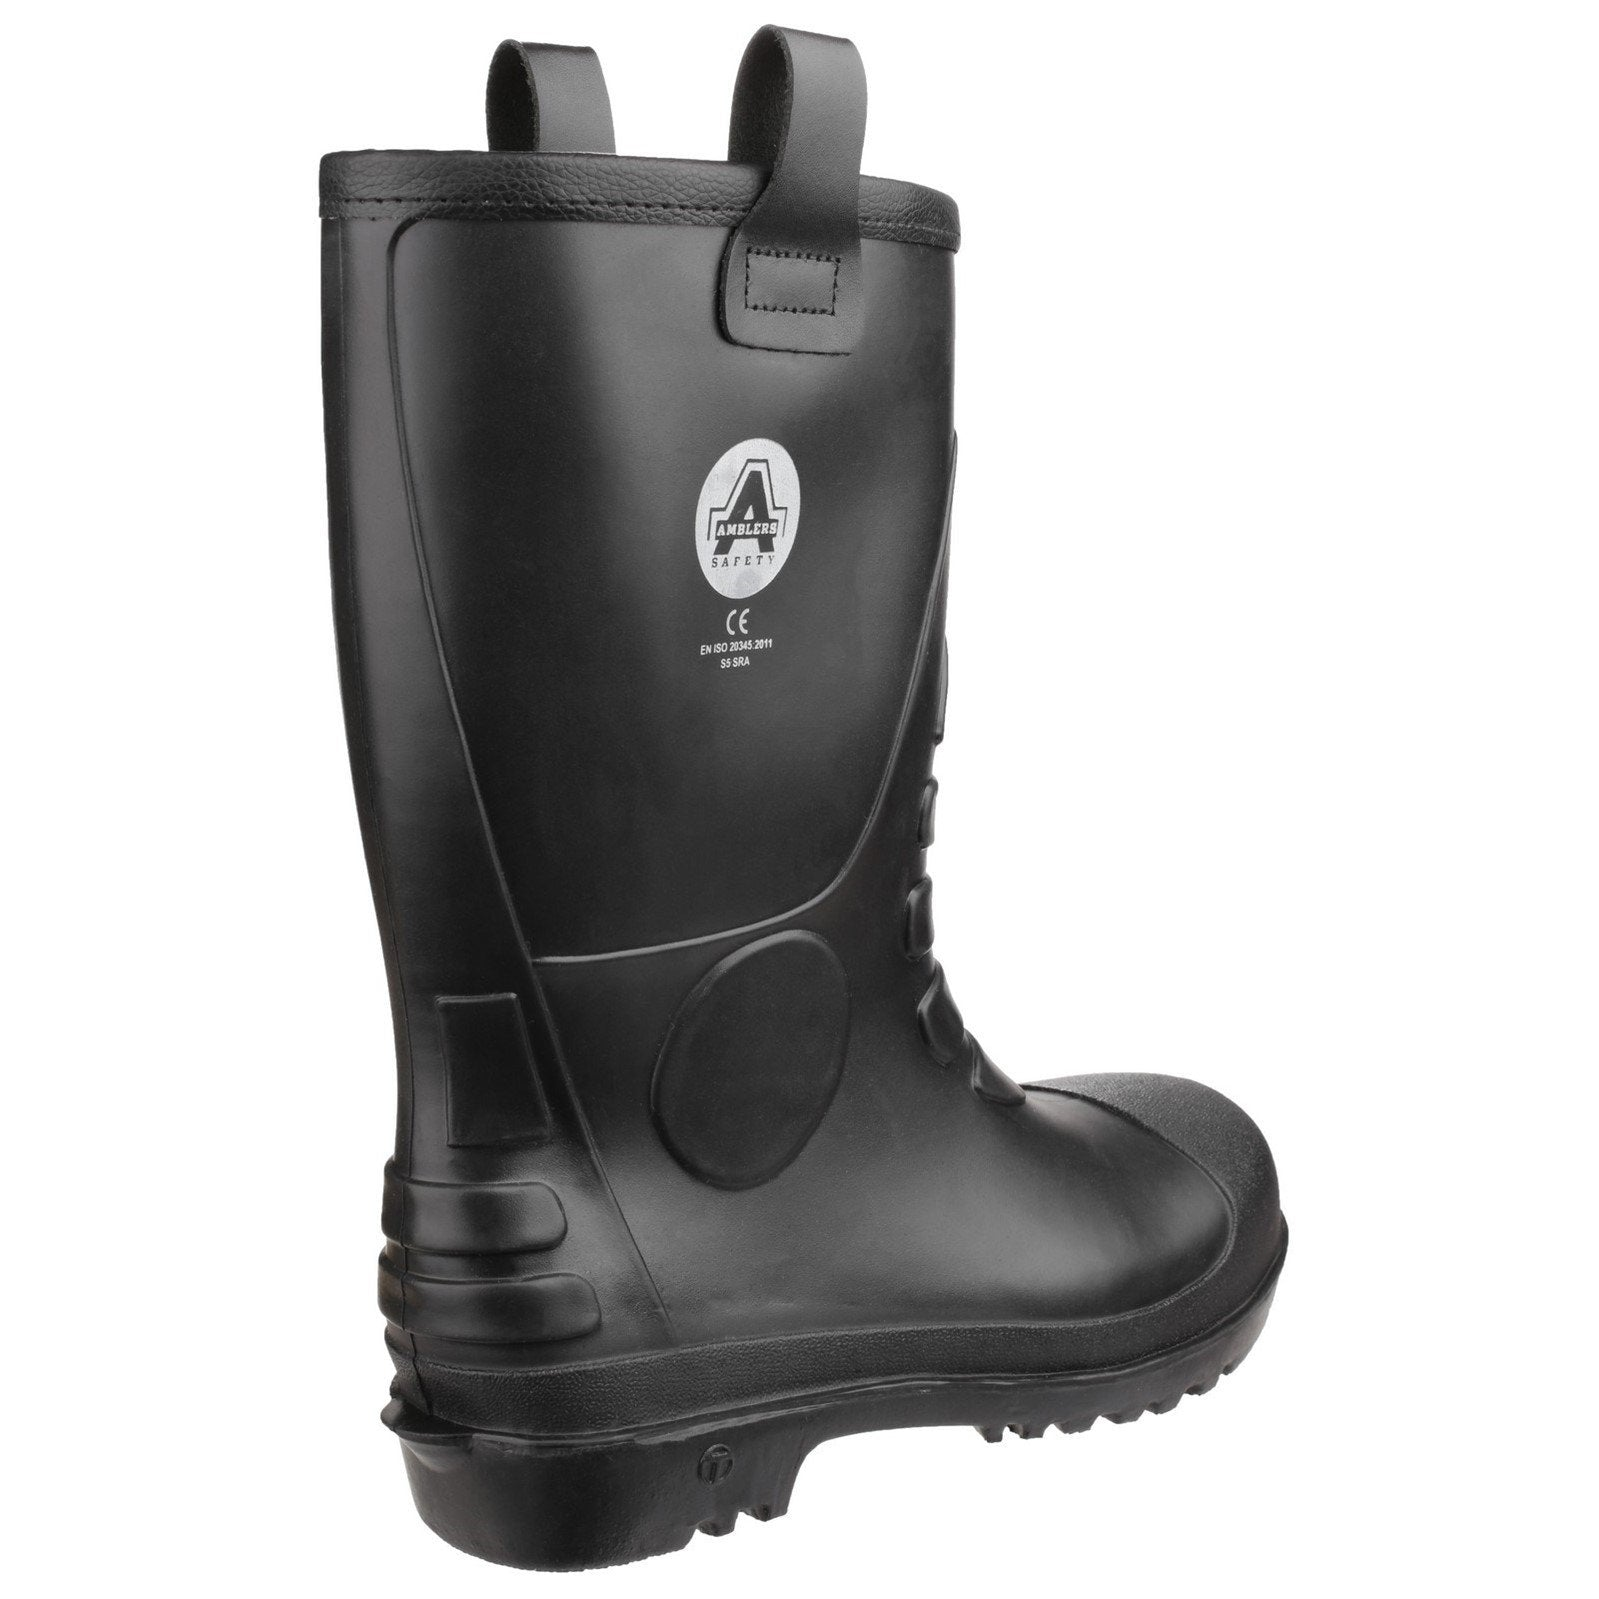 b119a7b607d Amblers Safety Rigger Boots - GS Workwear